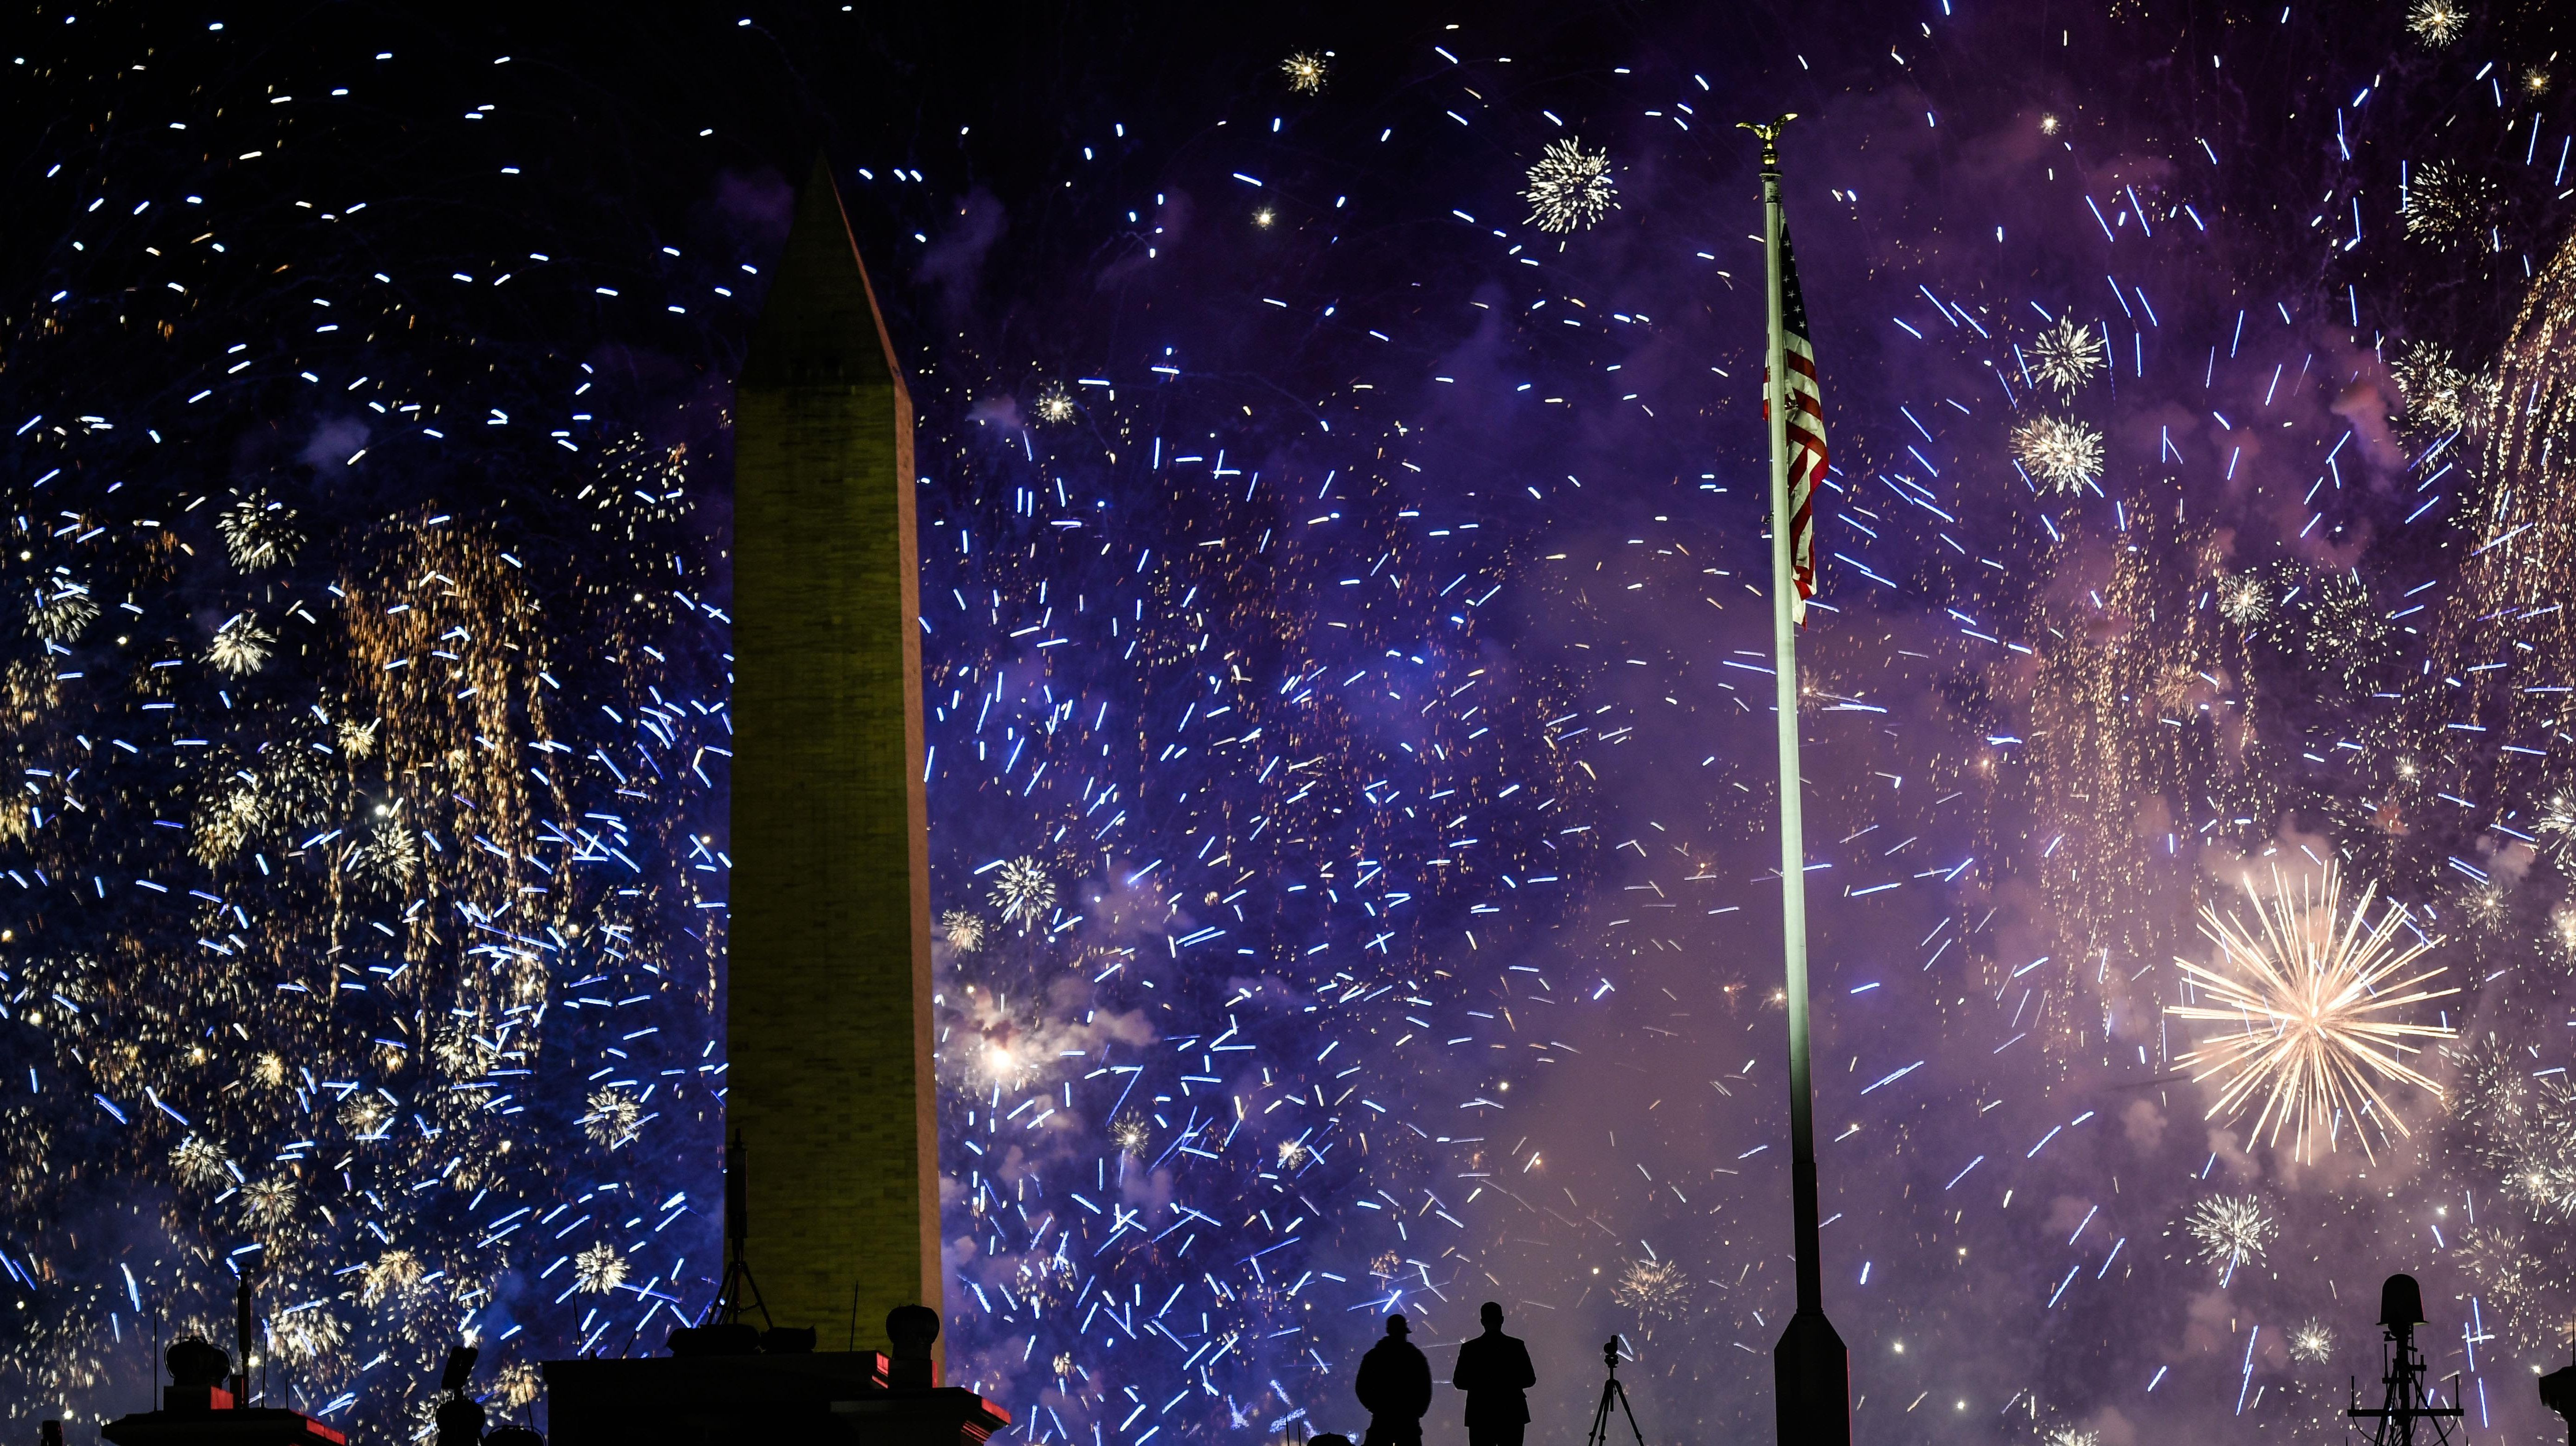 Fireworks above the White House on Joe Biden's Inauguration Day.